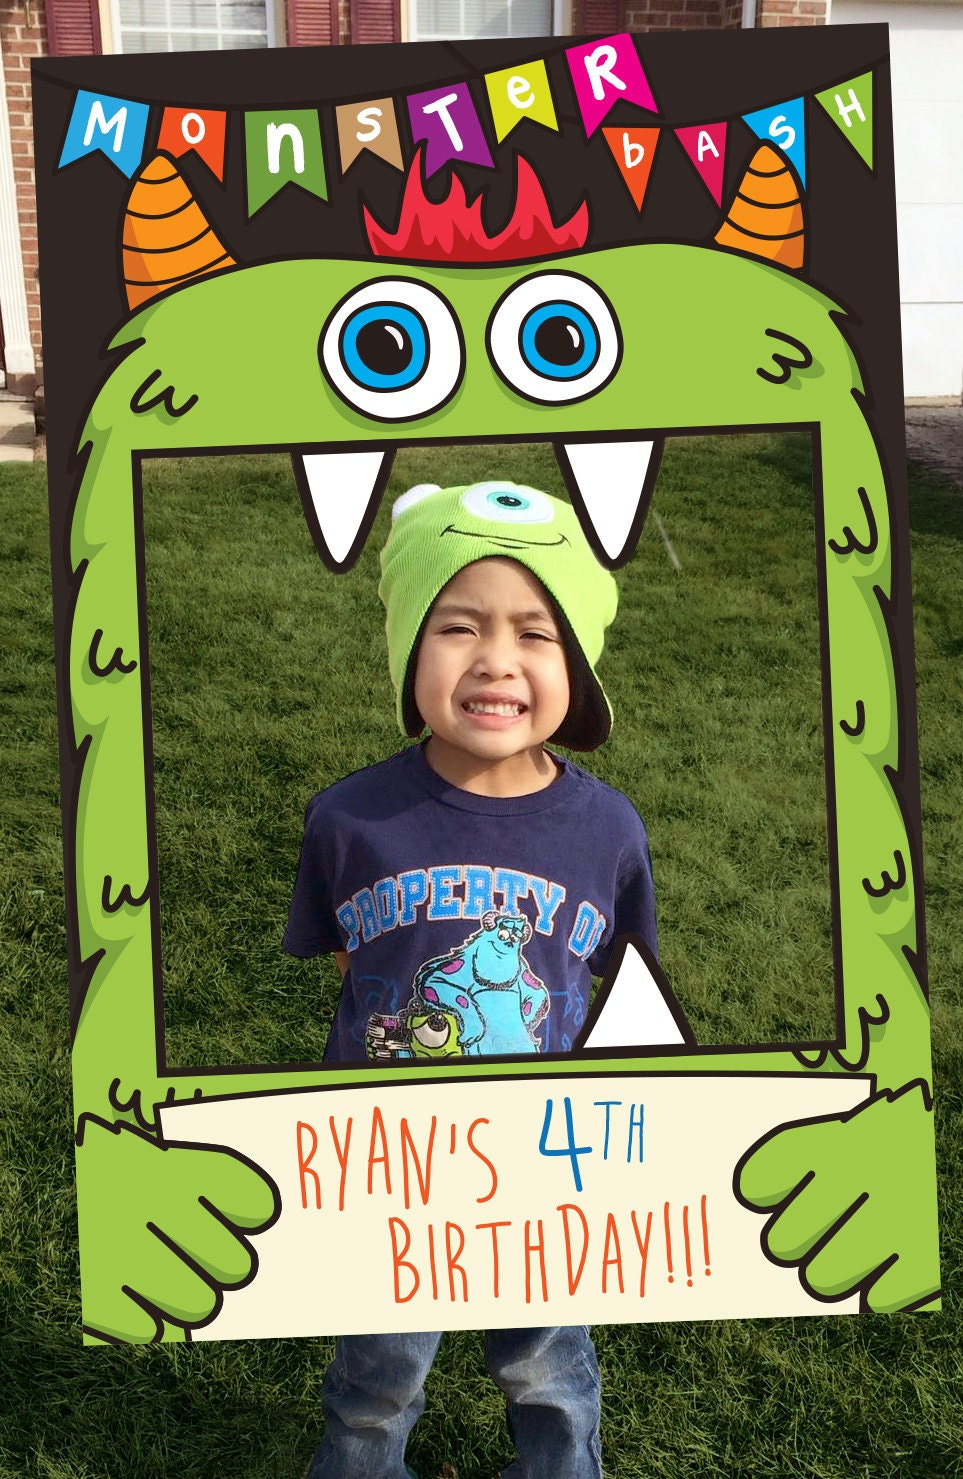 Monster Bash Theme Photo Booth Party Prop Frame Digital File